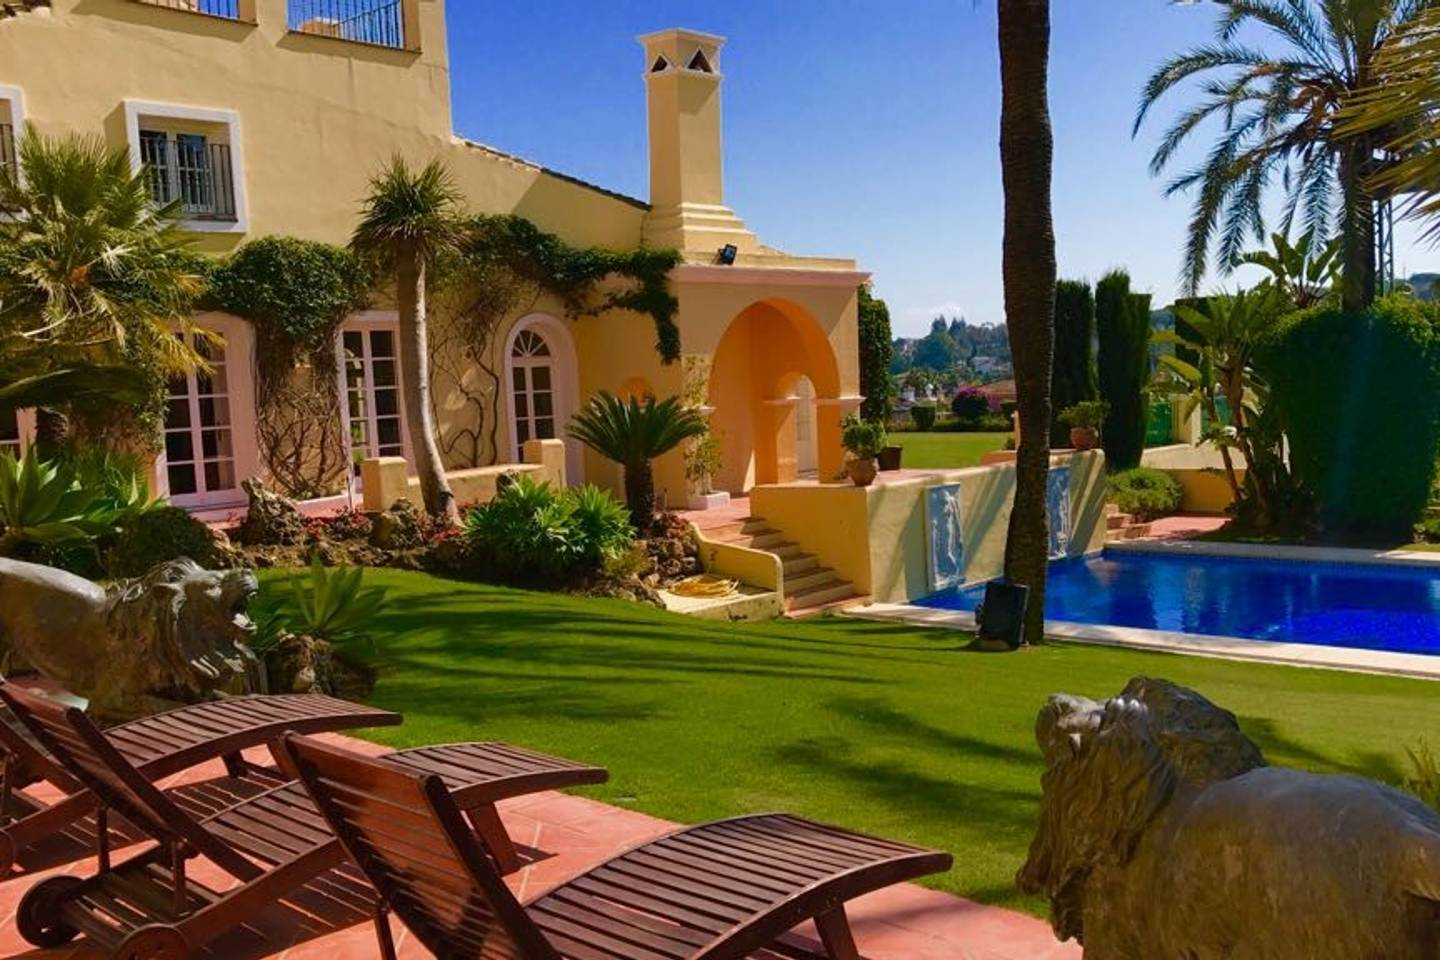 Apartment Soo LUXURIOUS catered Spoiling Estate Pools   Spa photo 25937684